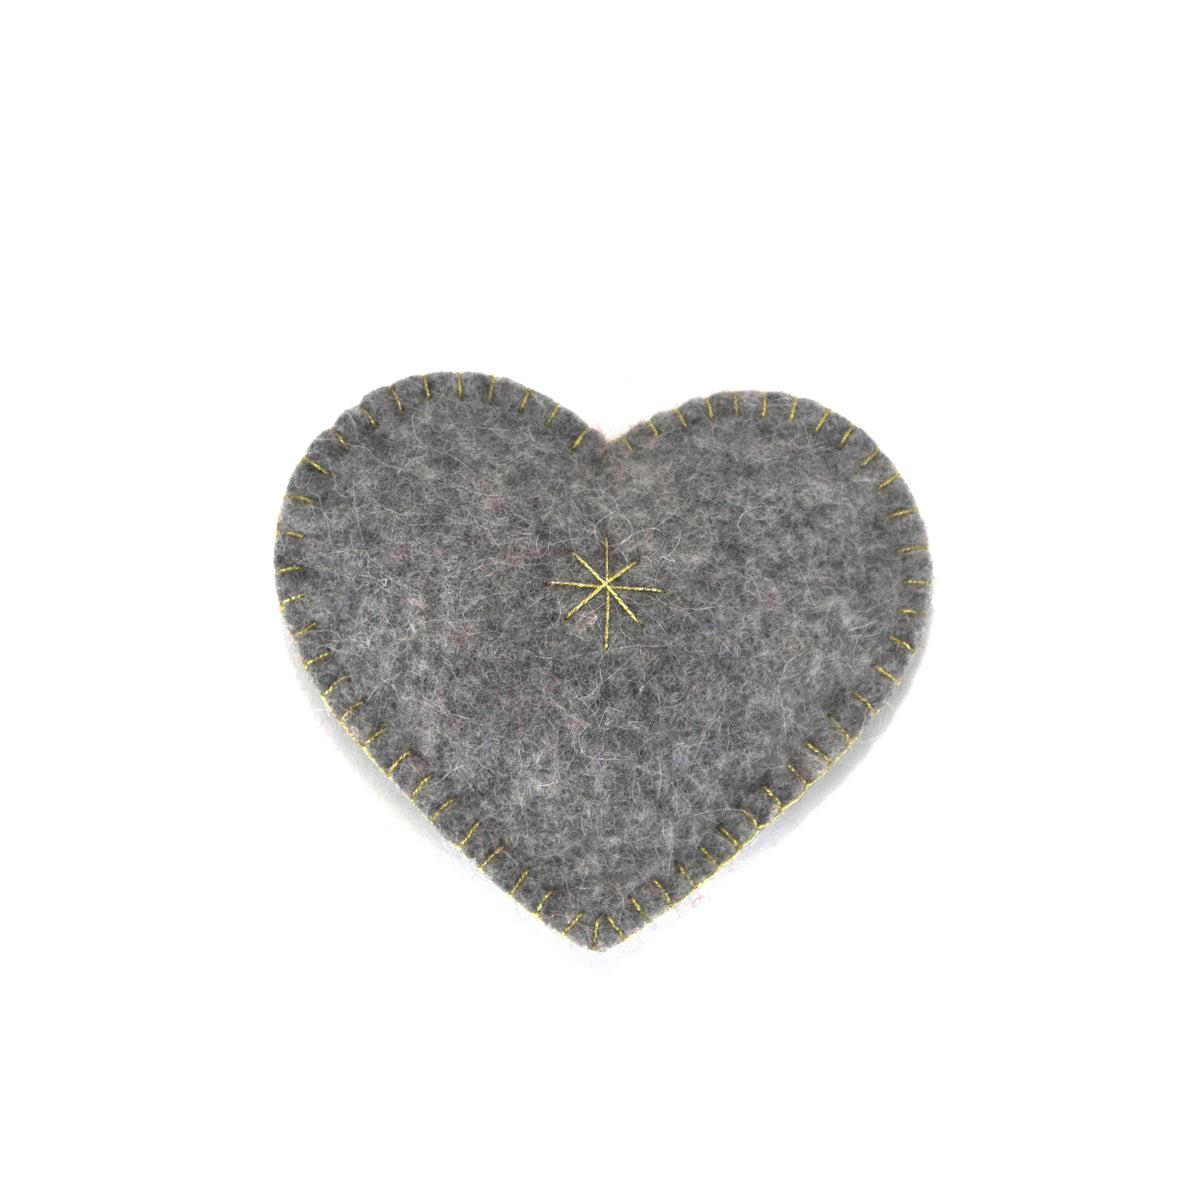 Heart Felted Ornament - Grey